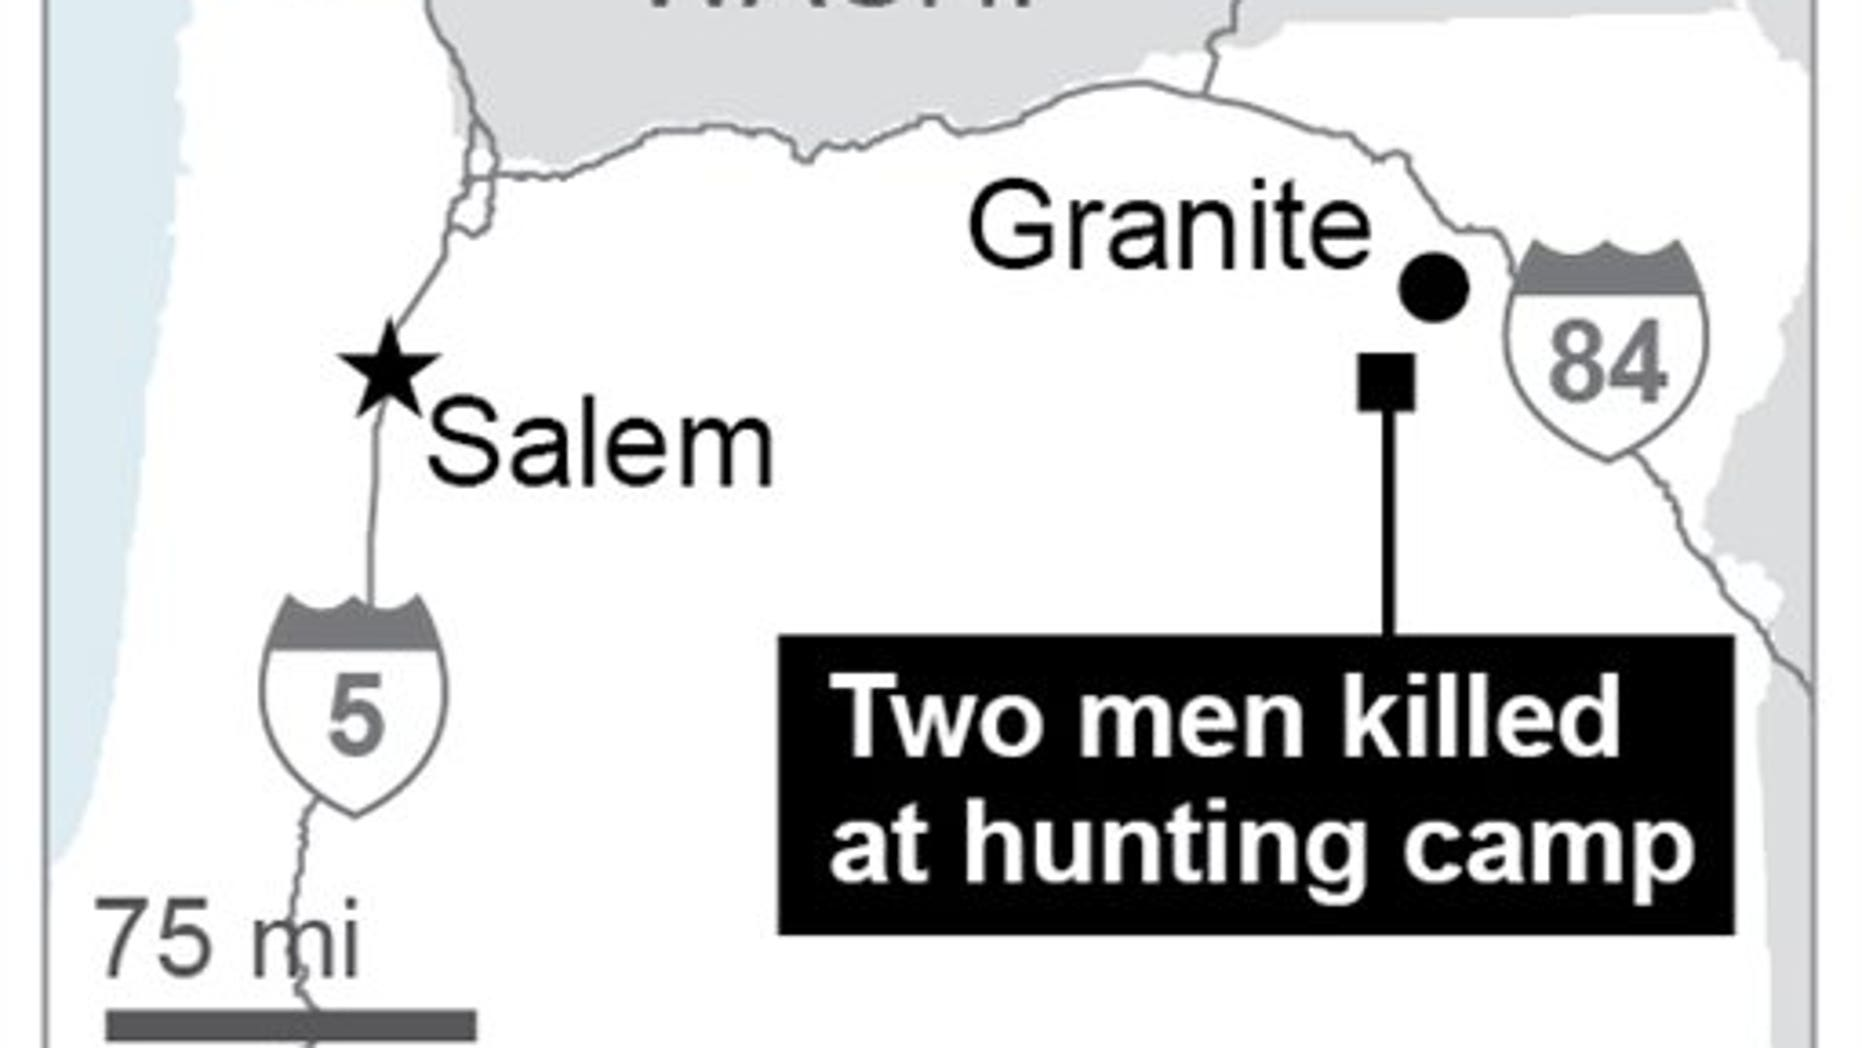 Map locates area where shootings took place; 1c x 2 inches; 46.5 mm x 50 mm;